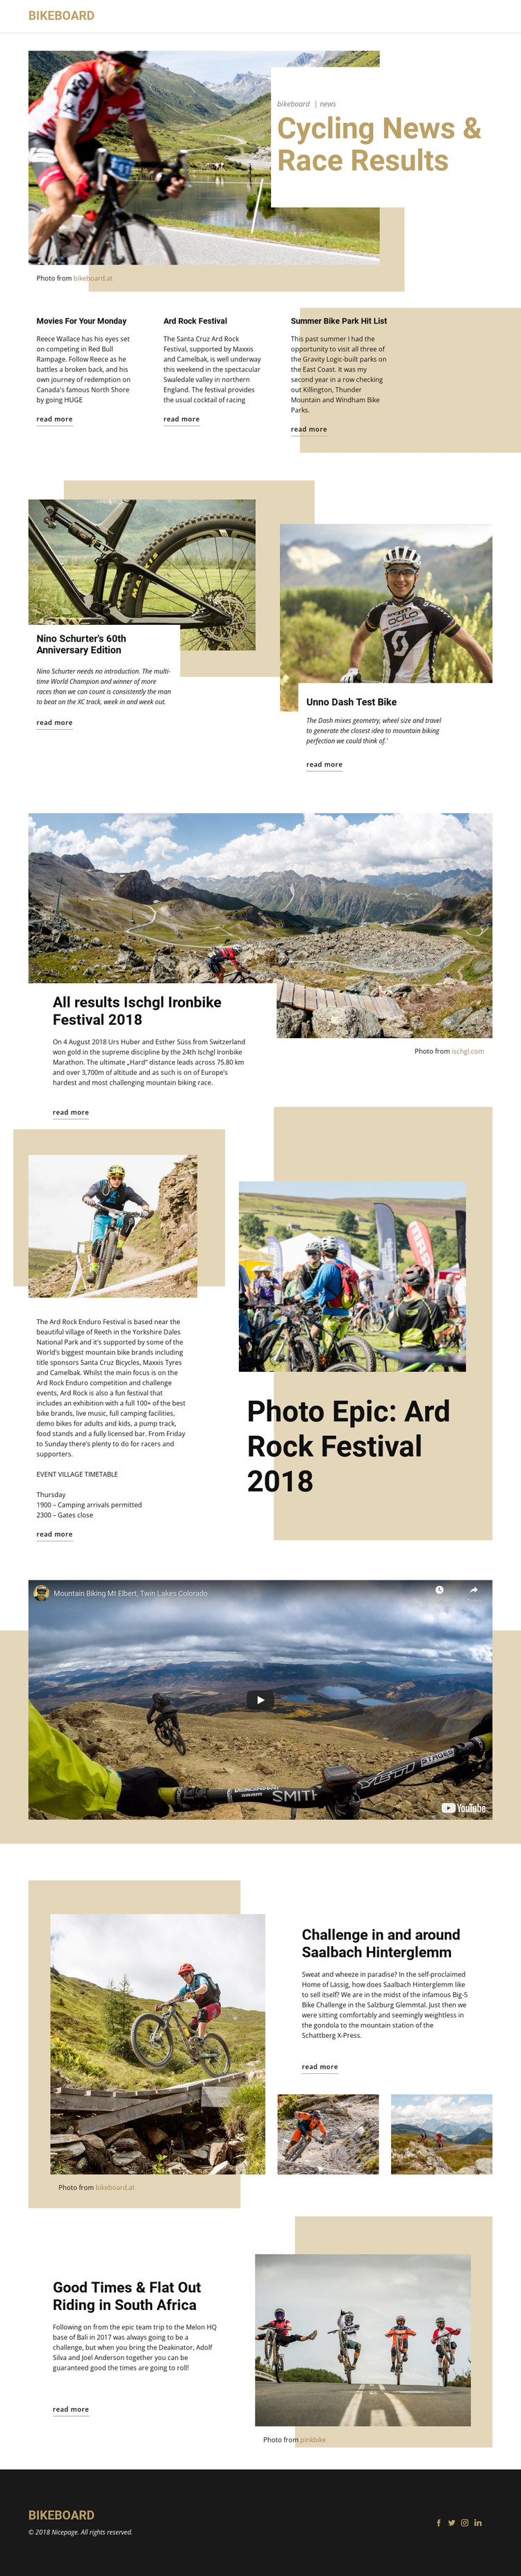 Cycling News HTML Template